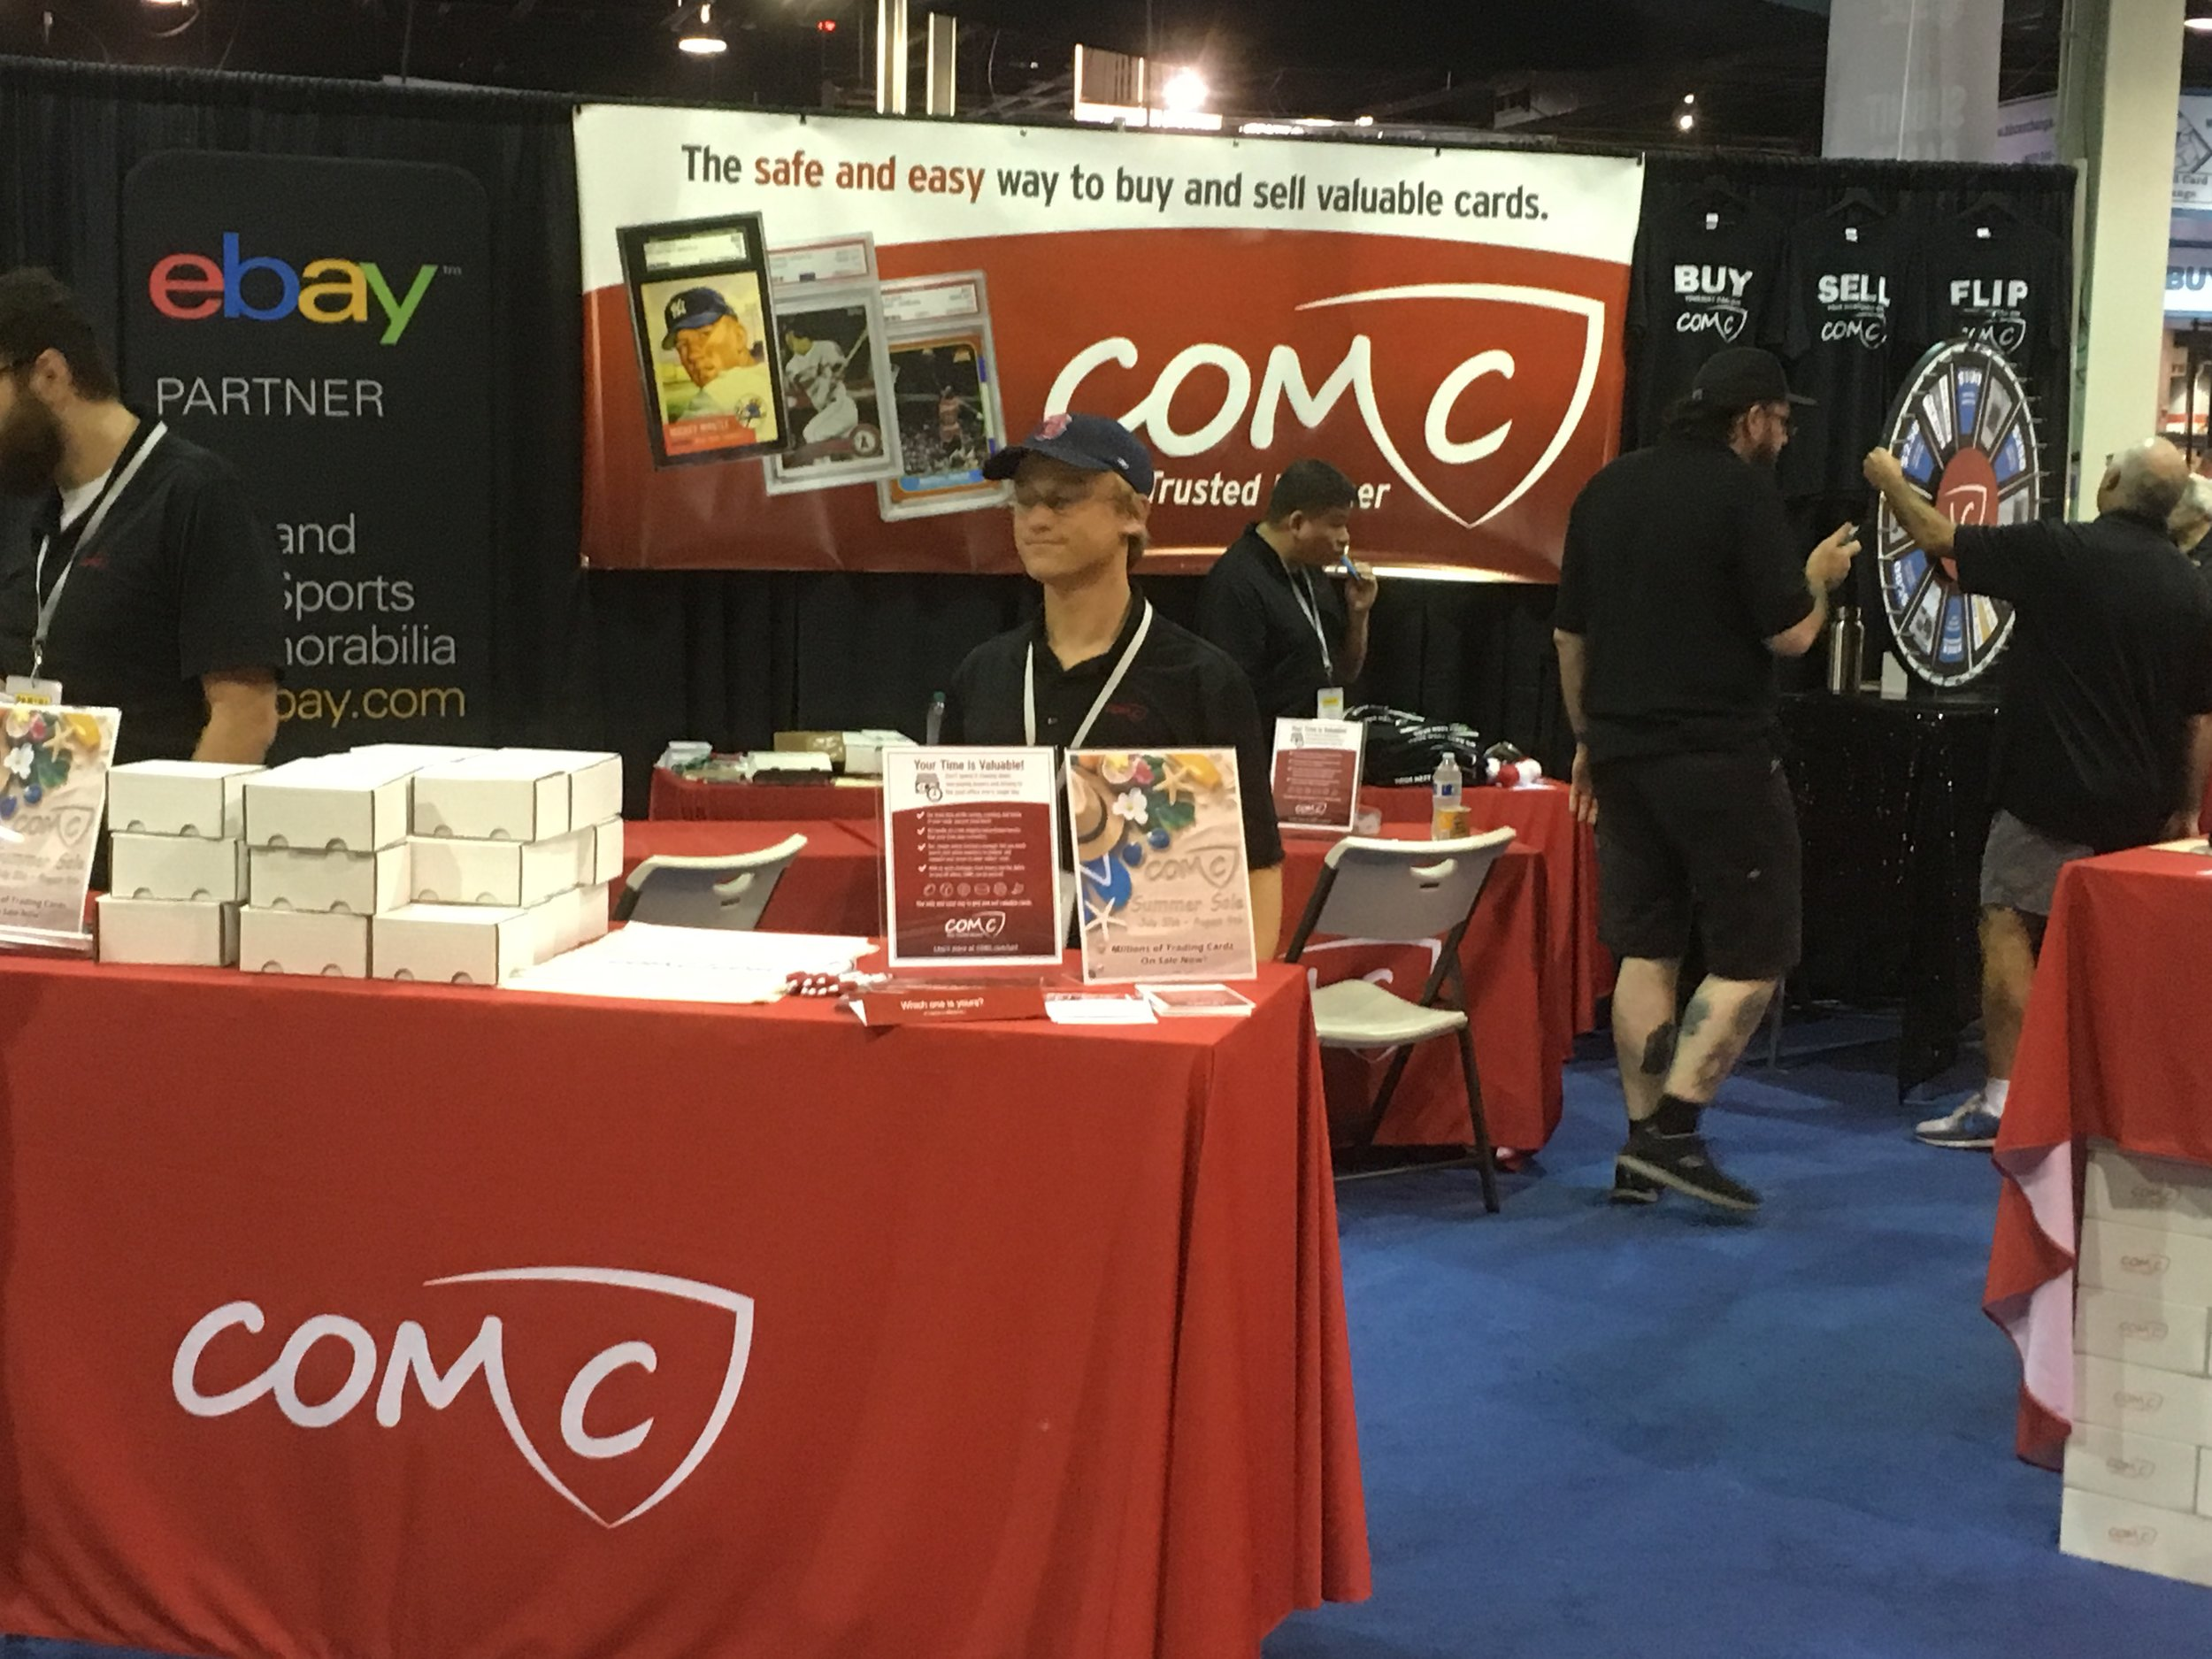 The COMC team was set up and ready to discuss the site with attendees.  A record number of submissions were dropped off by consigners during the show.